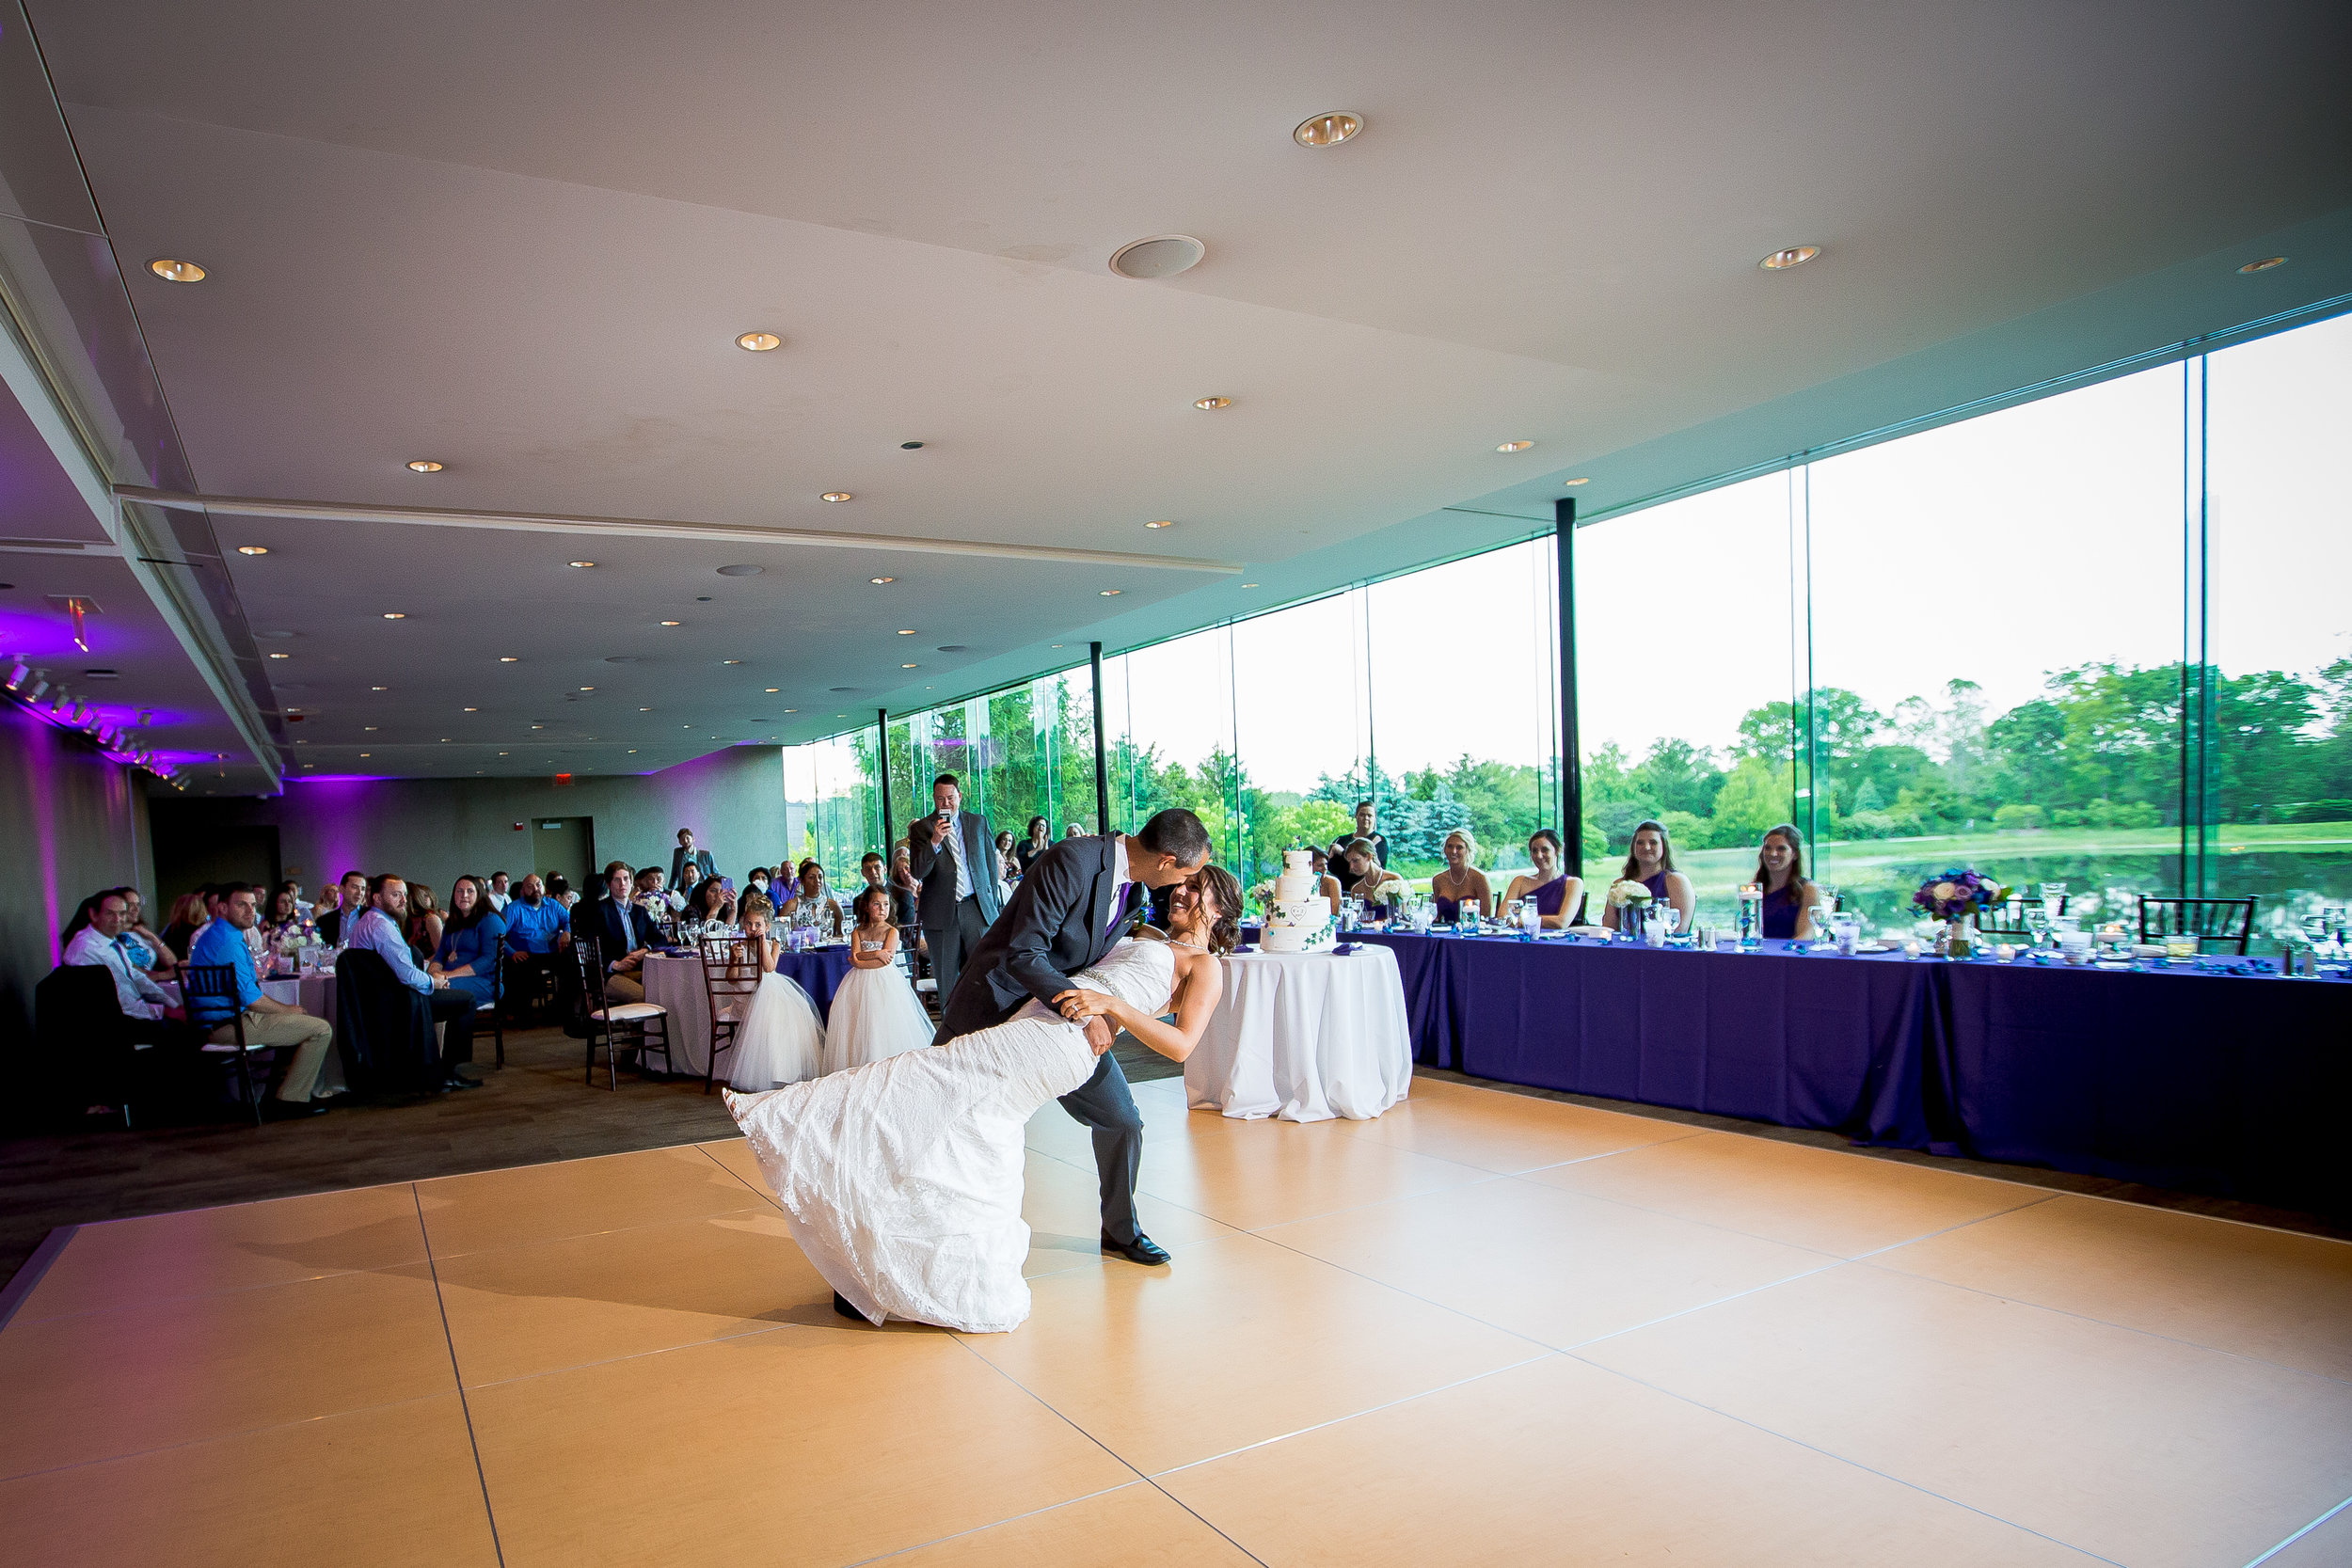 Bride and groom dipping during their first dance